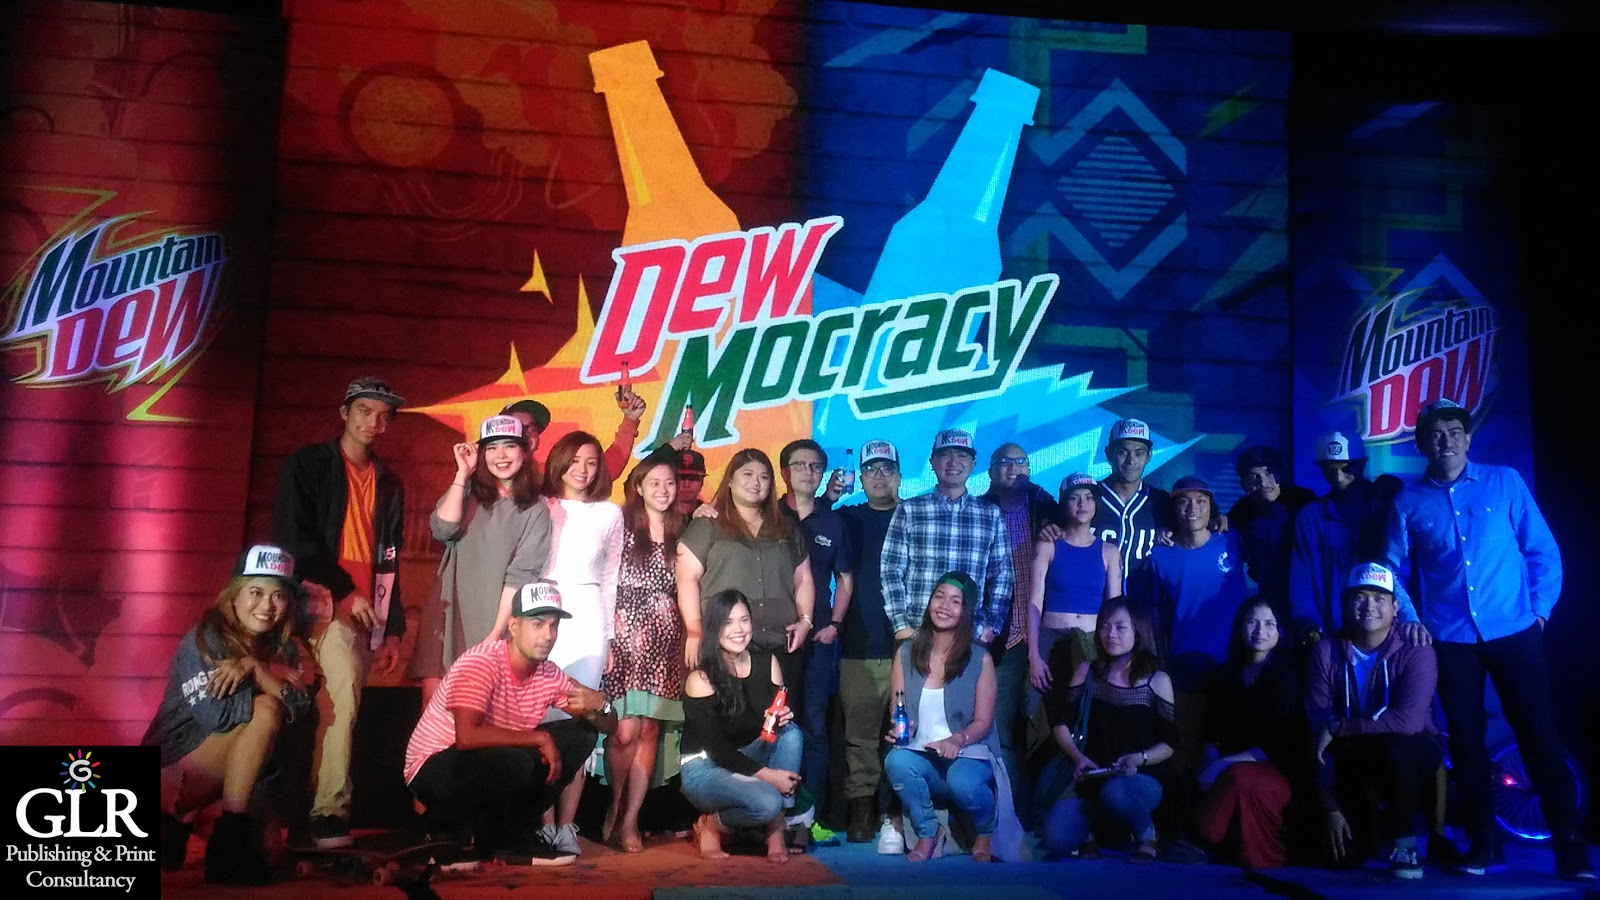 vote wisely for dewmocracy as mountain dew launched limited edition